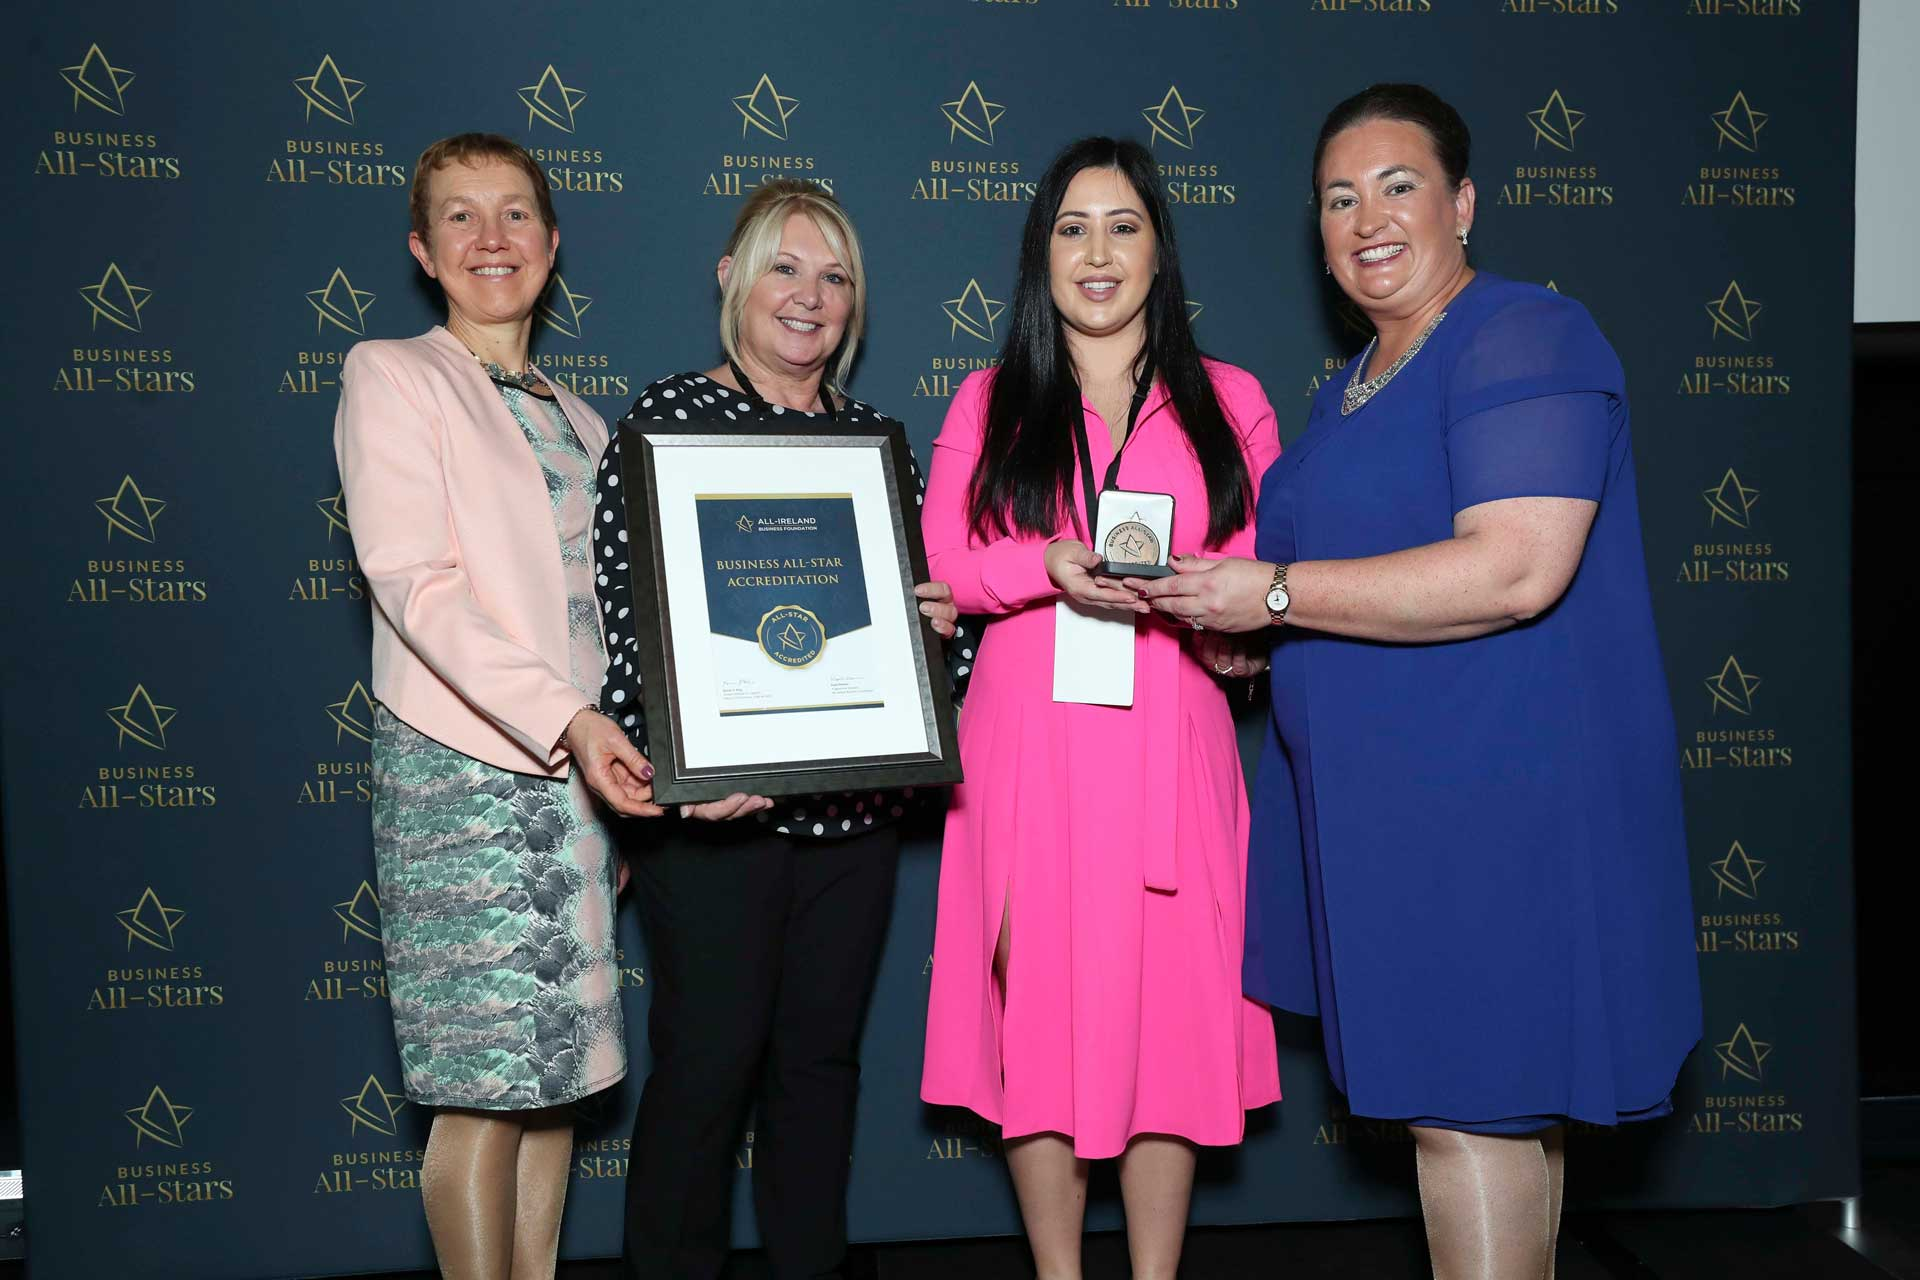 Michelle Kerslake & team- Beautique Beauty Studio receiving Business All-Star Accreditation at Croke Park from Dr Briga Hynes, Kemmy Business School, University of Limerick and CEO of AIBF, Elaine Carroll.